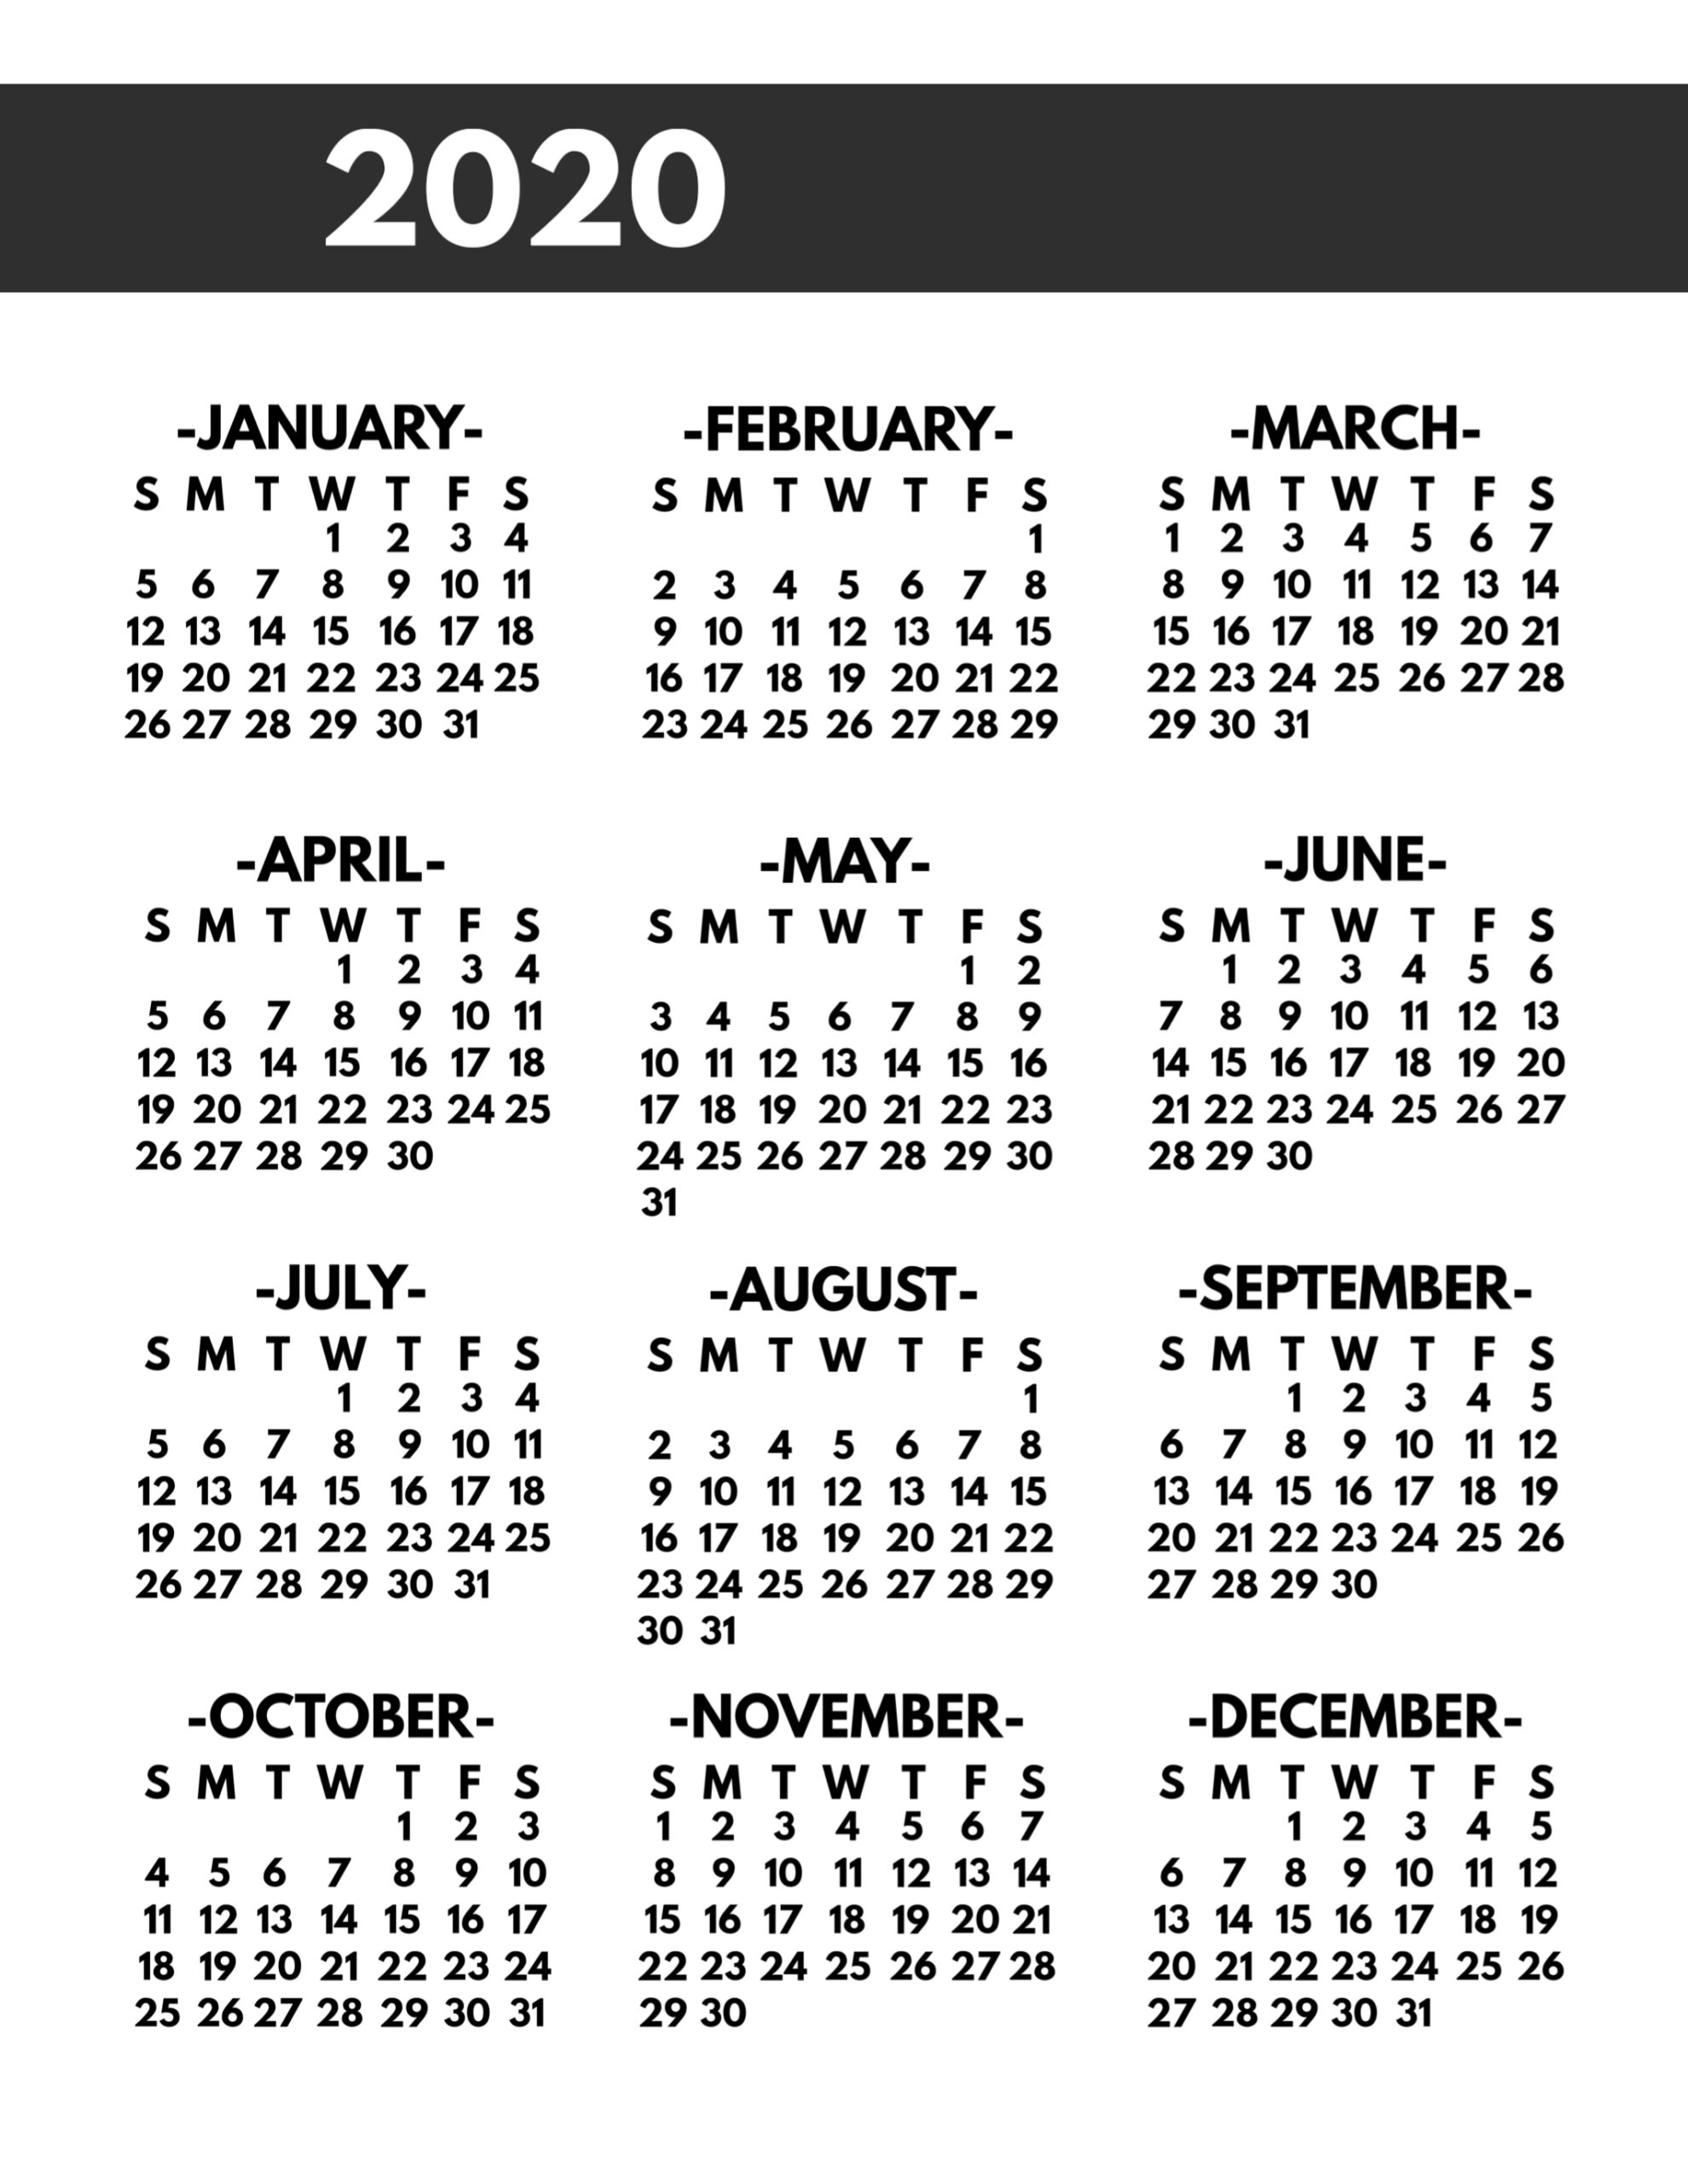 2020 Printable One Page Year At A Glance Calendar - Paper within Printable 2020 Calender At A Glance